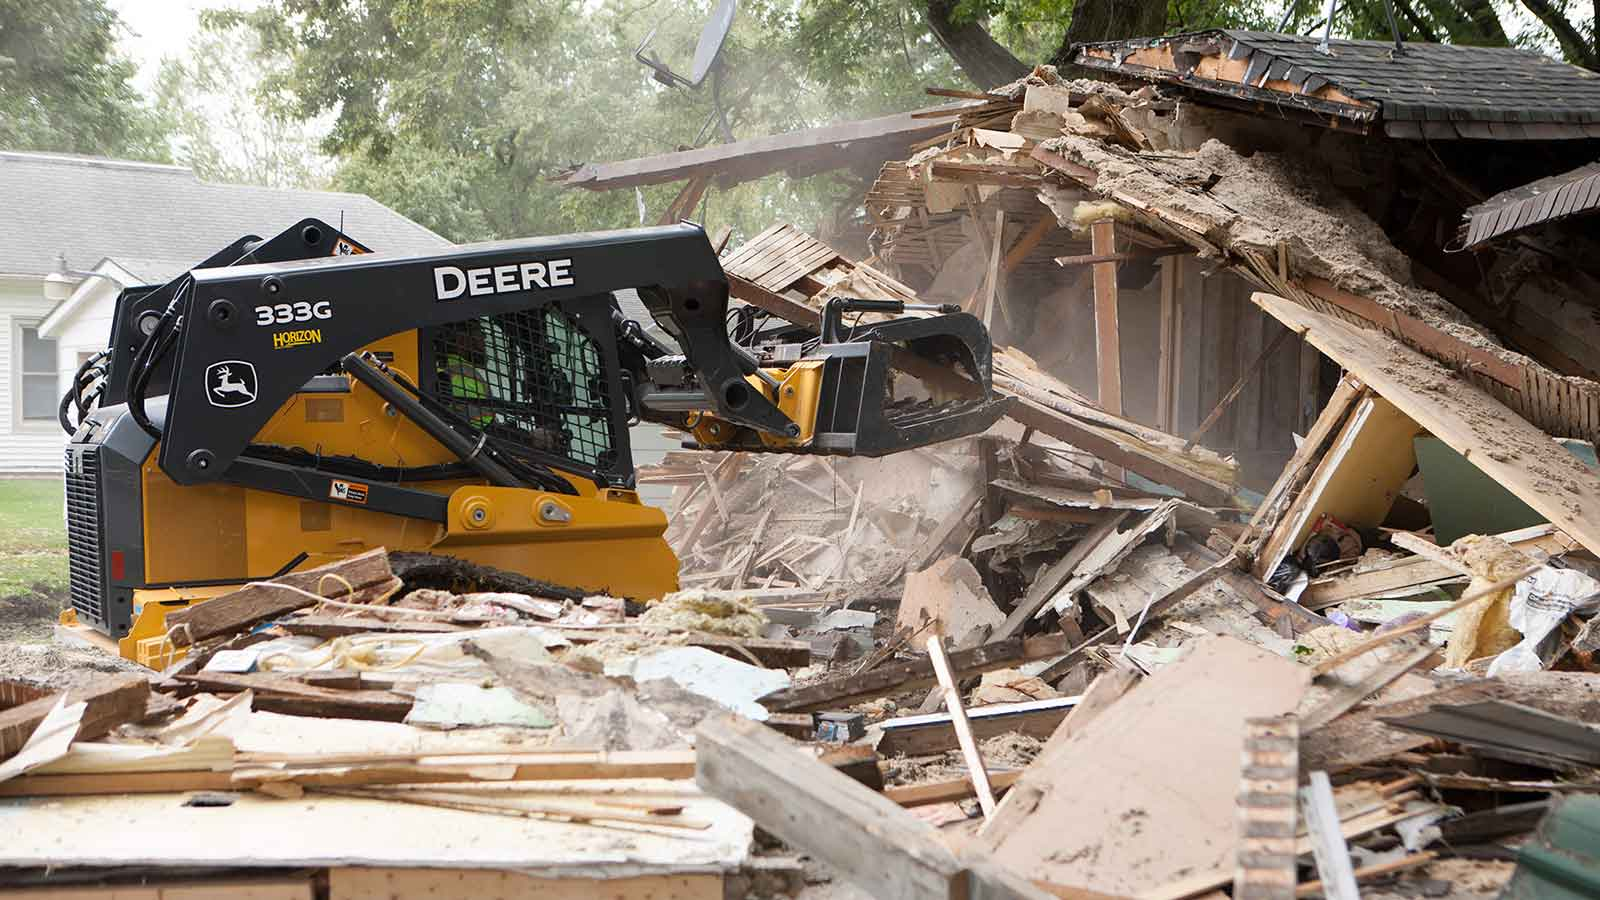 Moore uses the 333G compact track loader to demolish an old house.